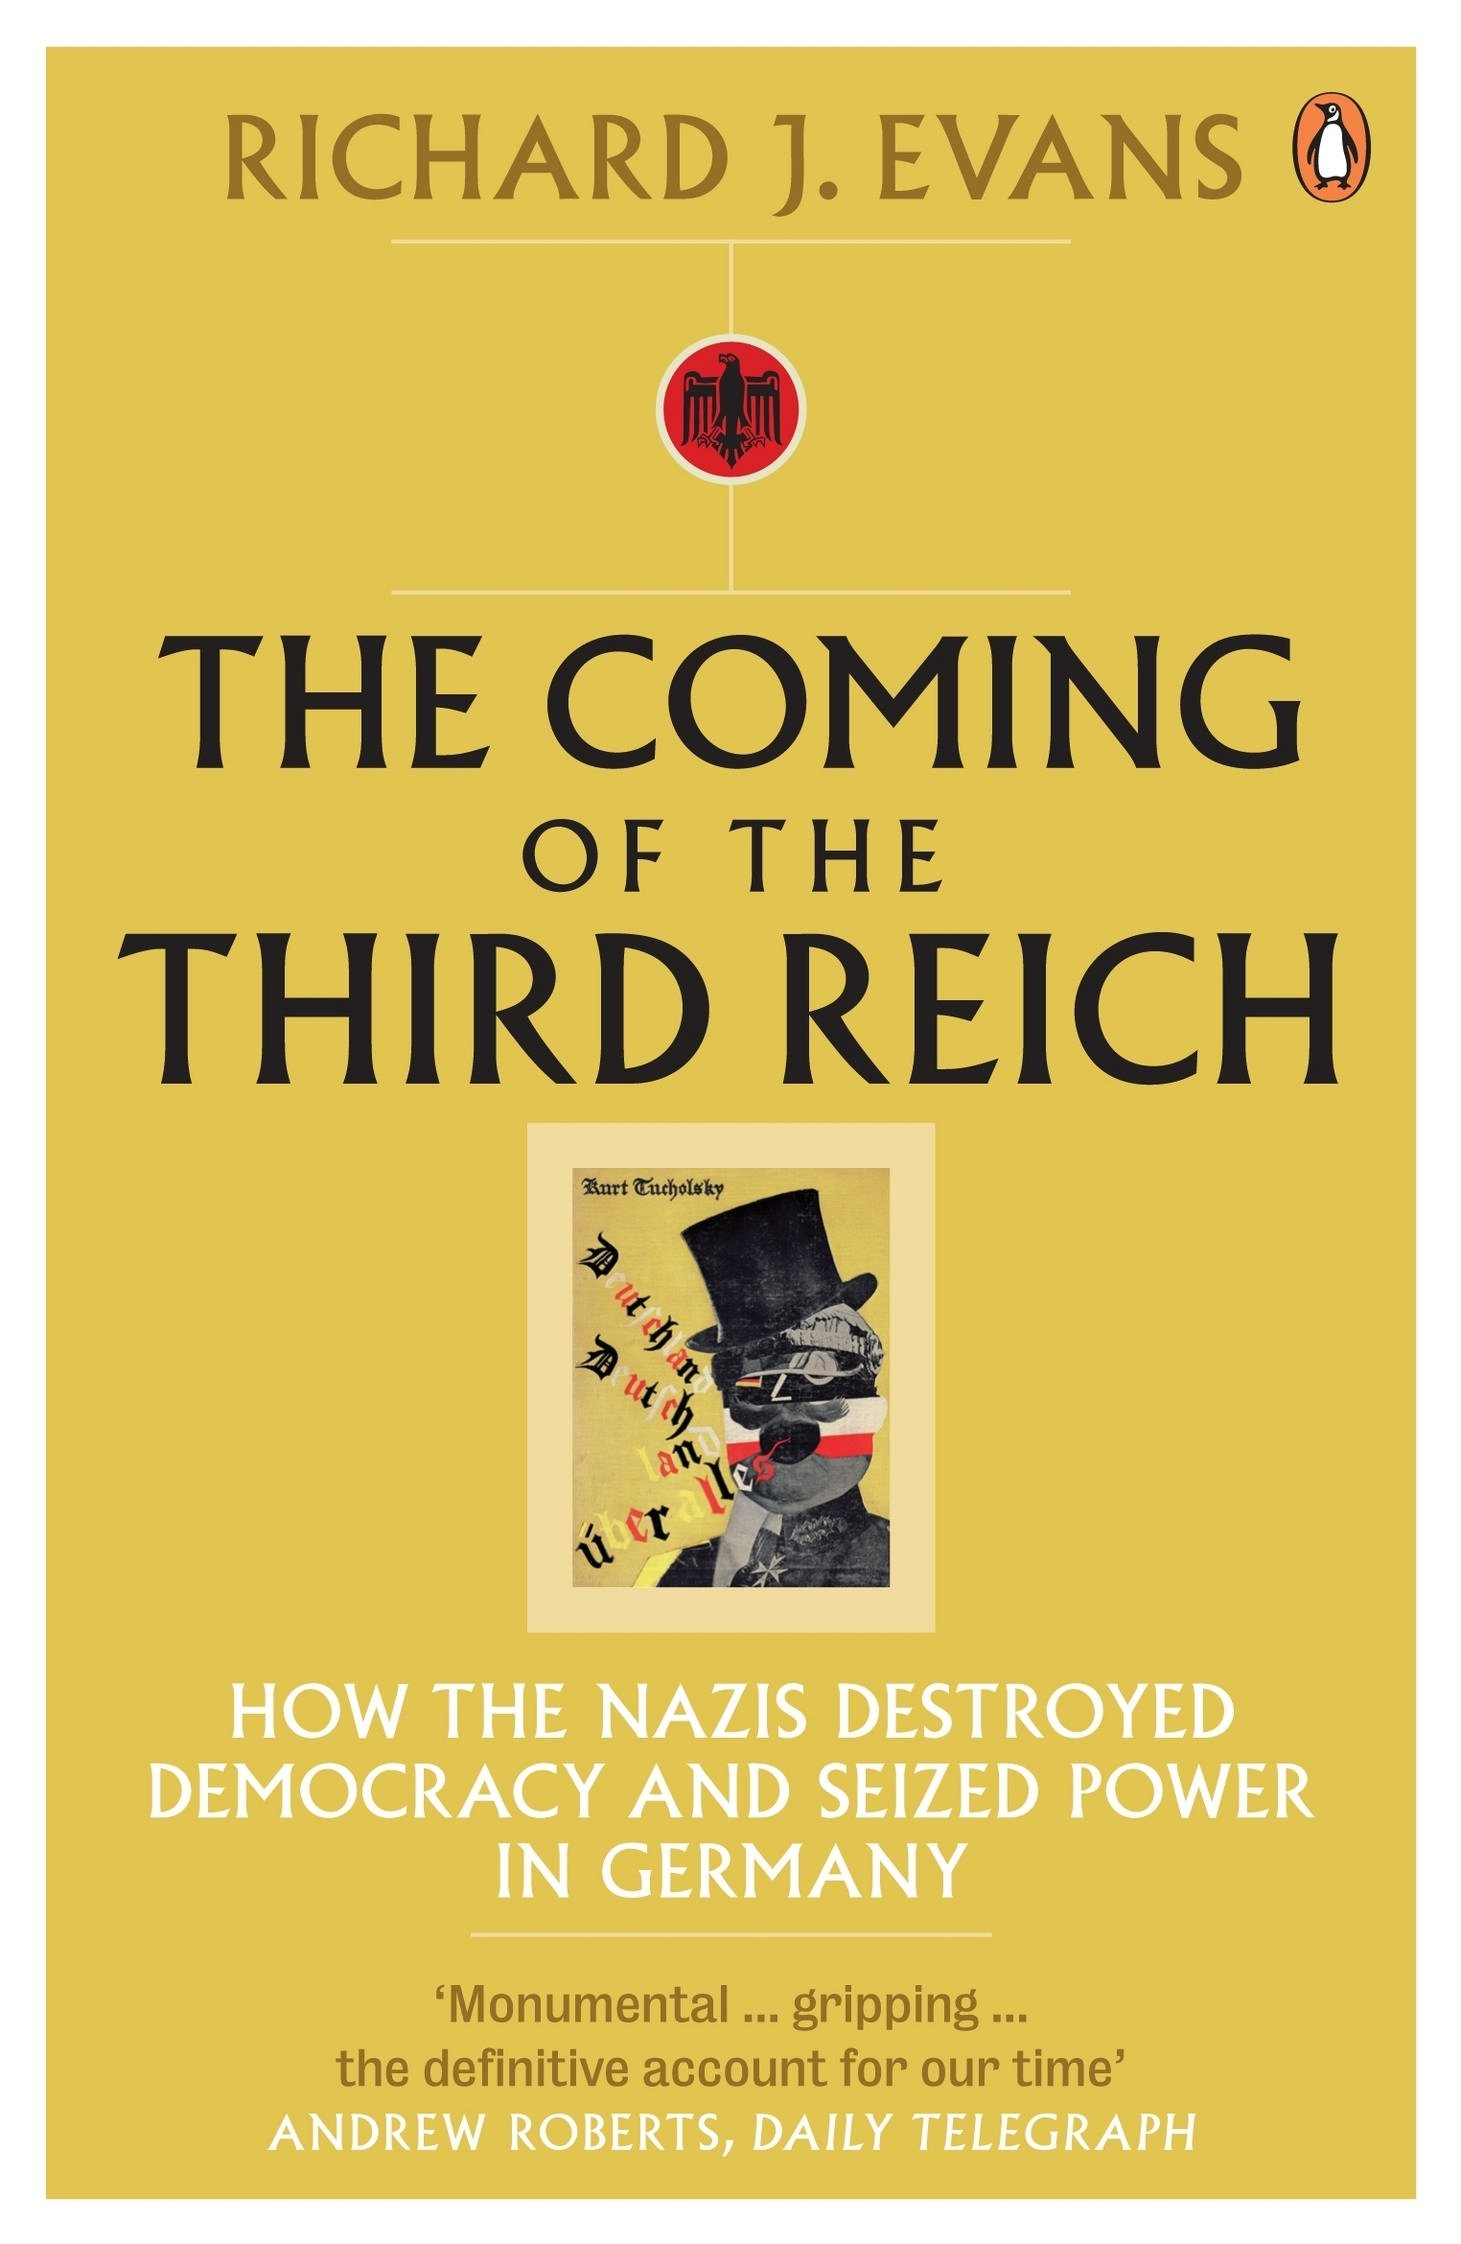 Download The Coming Of The Third Reich: How The Nazis Destroyed Democracy And Seized Power In Germany 